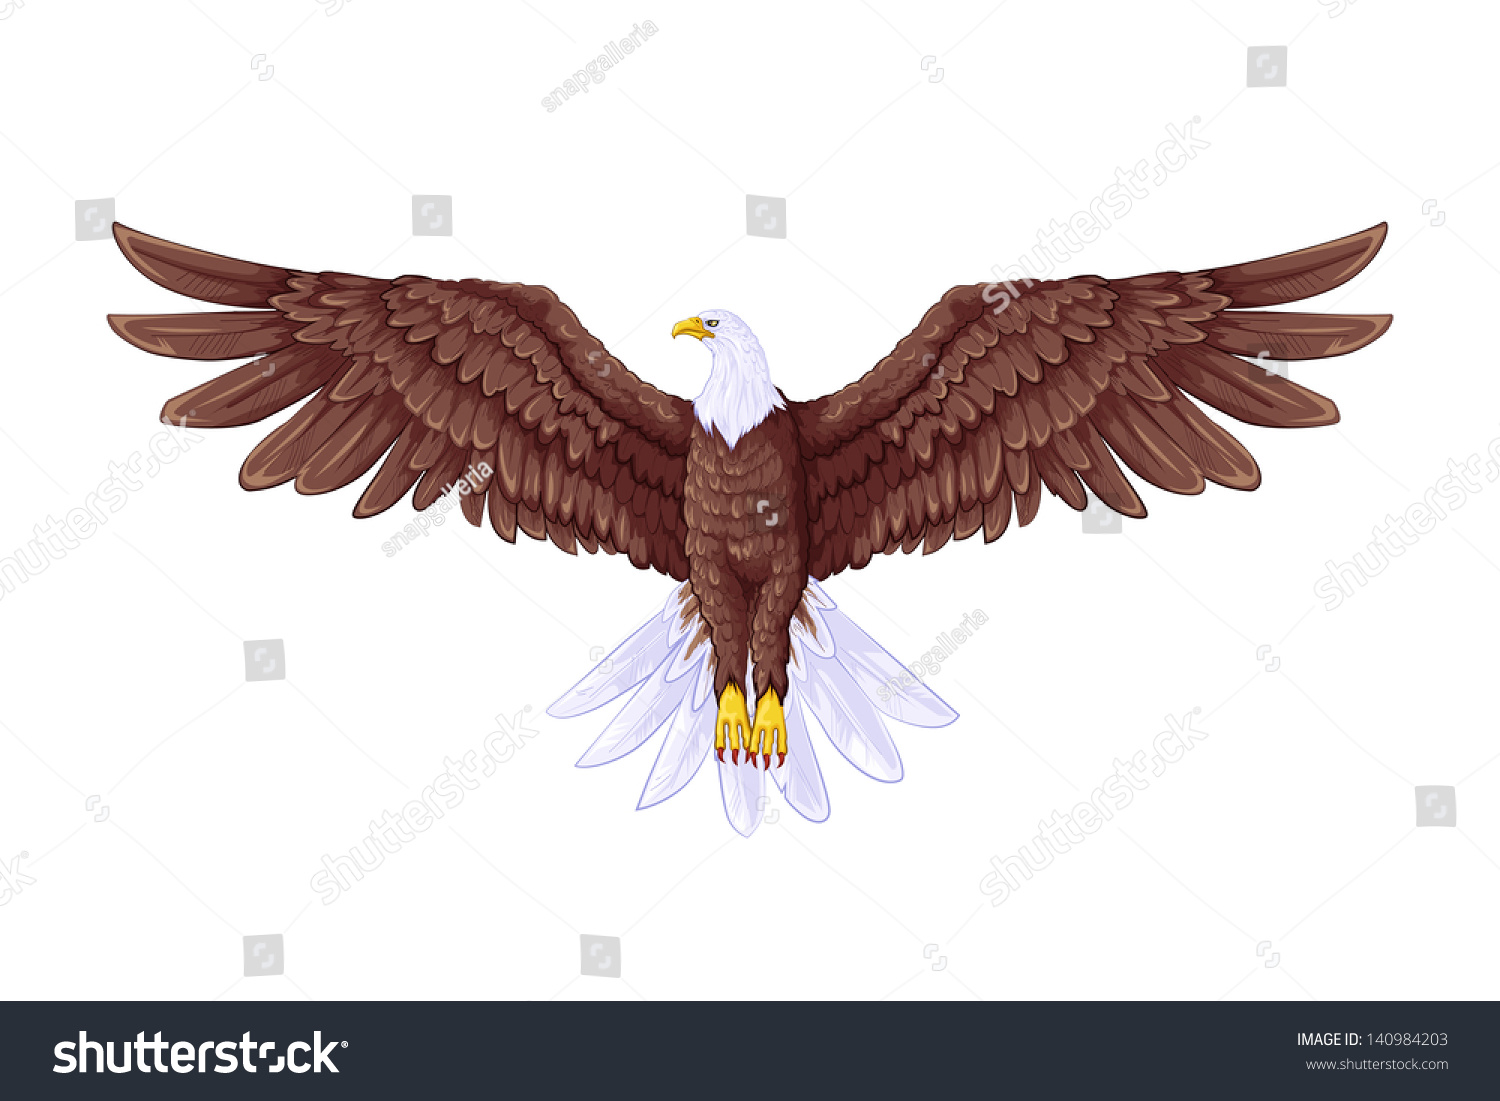 Easy To Edit Vector Illustration Of Flying Eagle ...